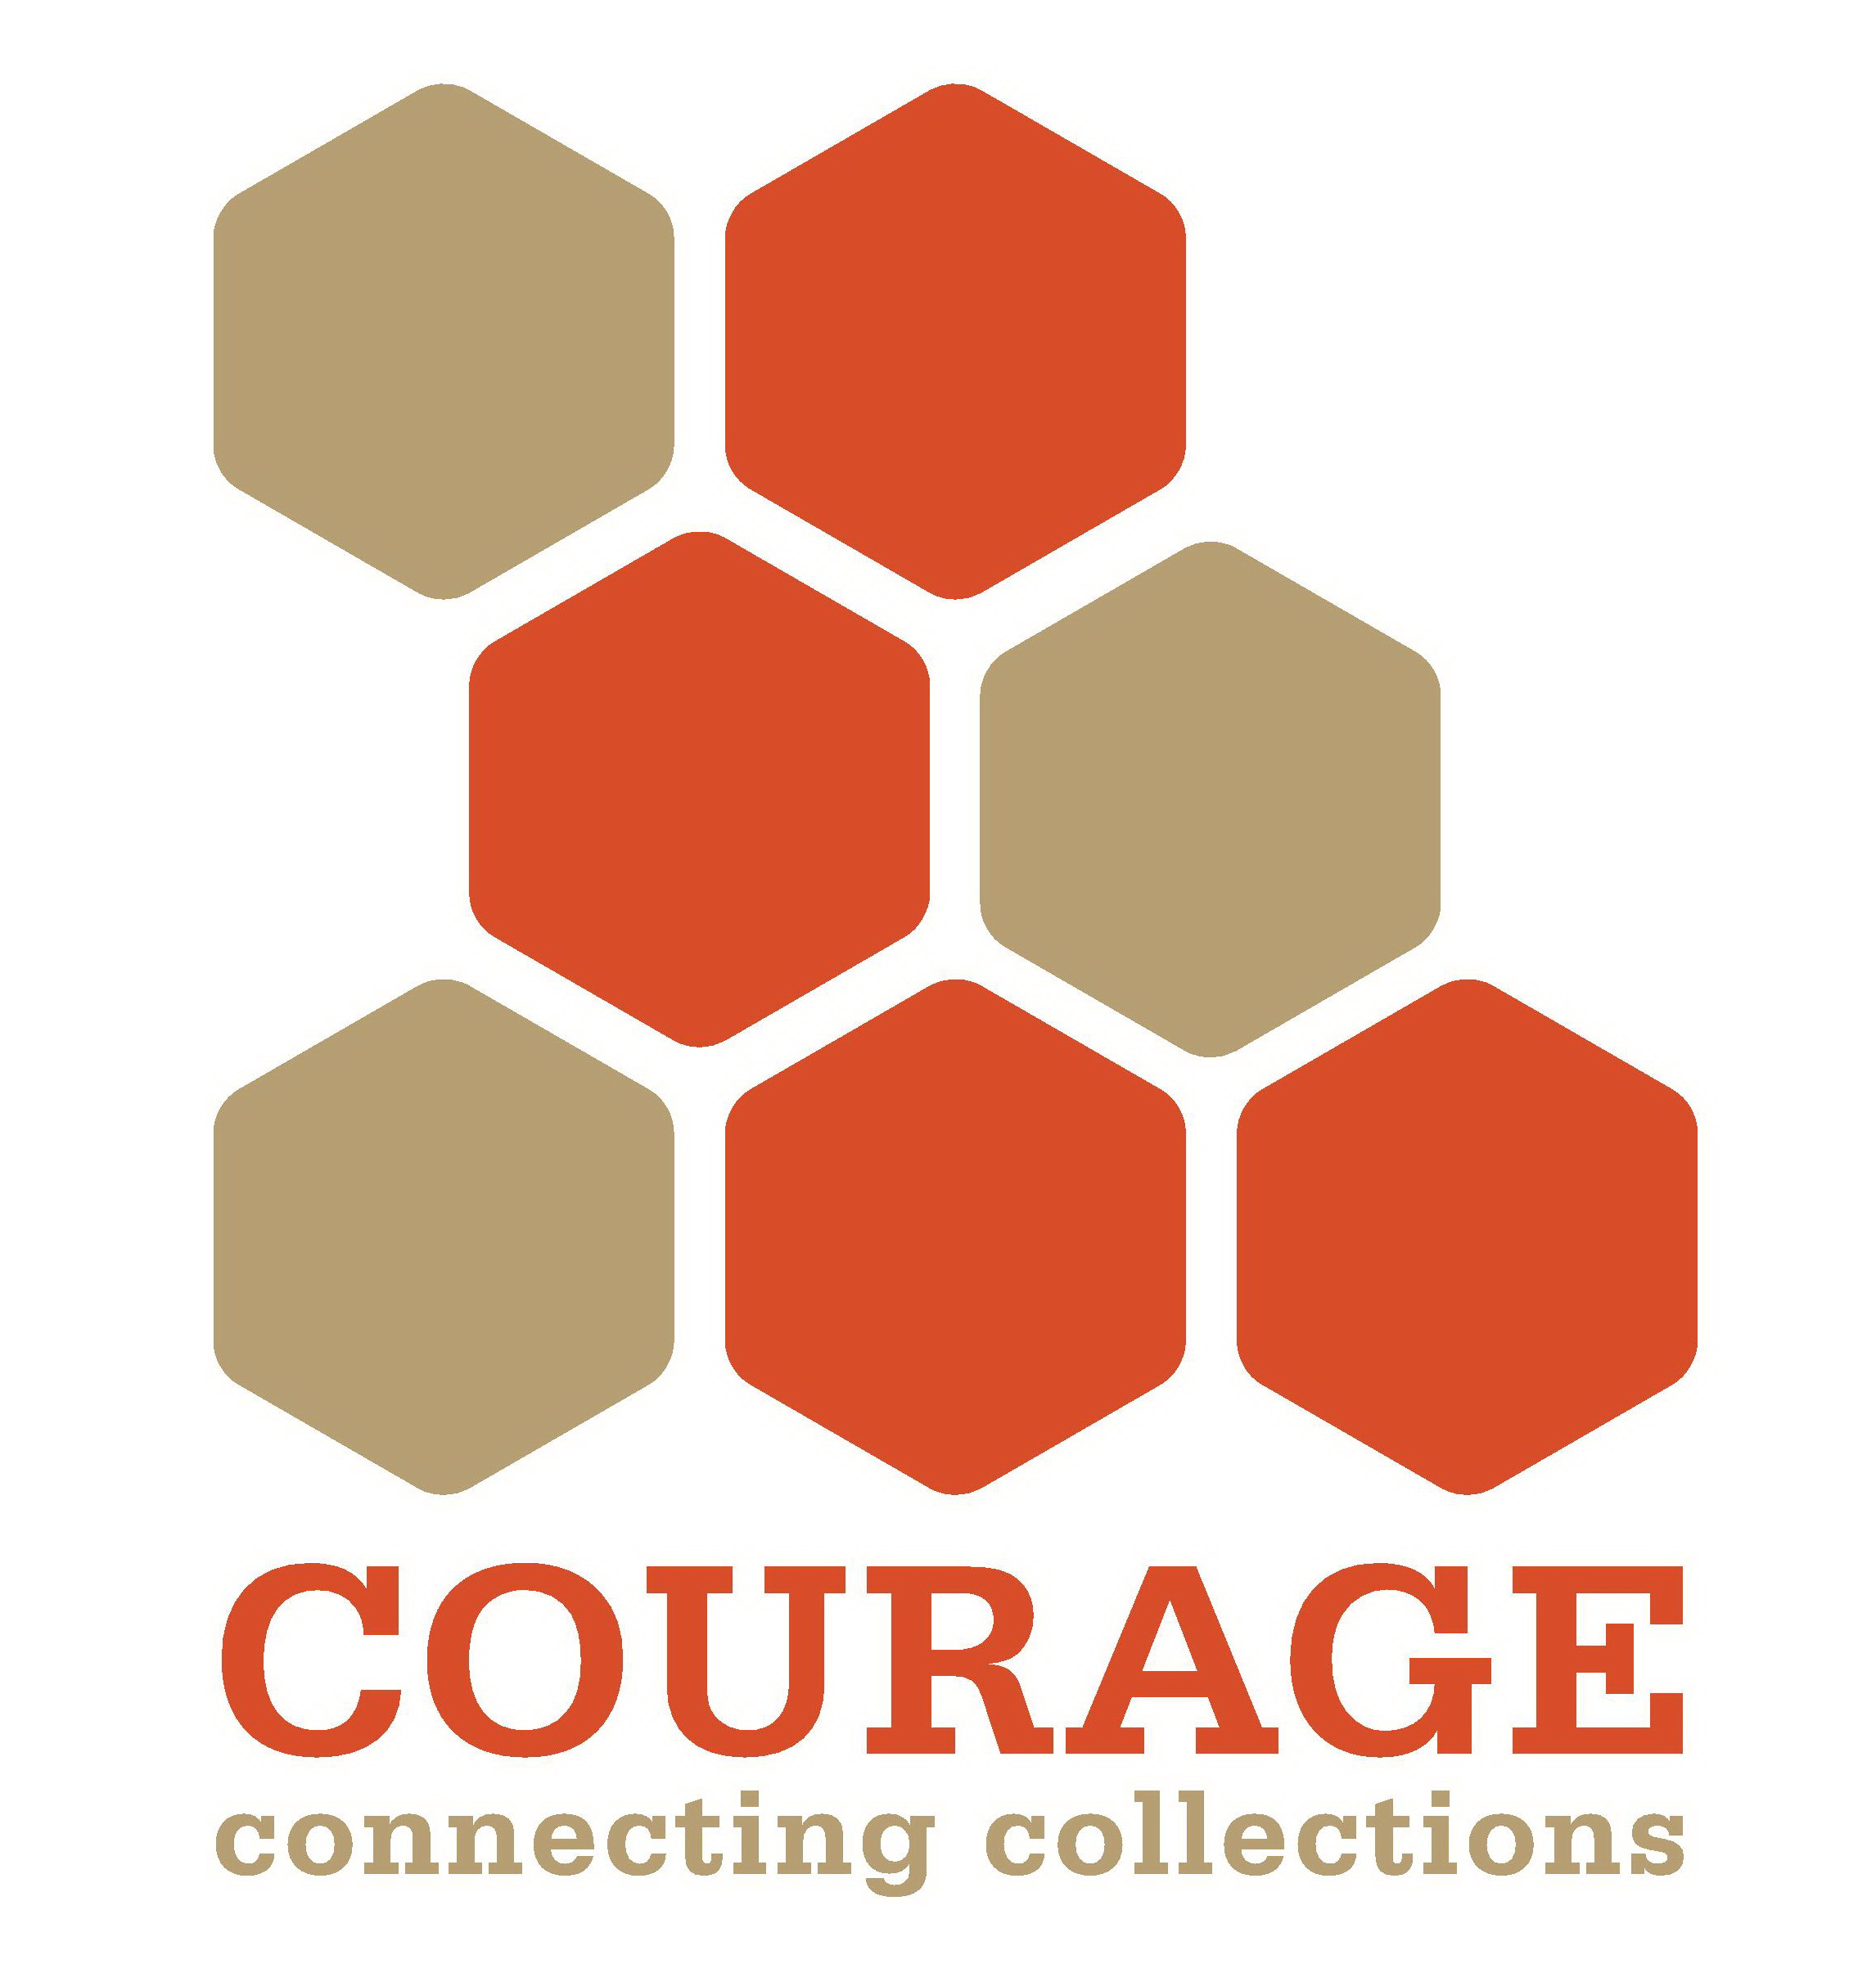 COURAGE new logo zoom